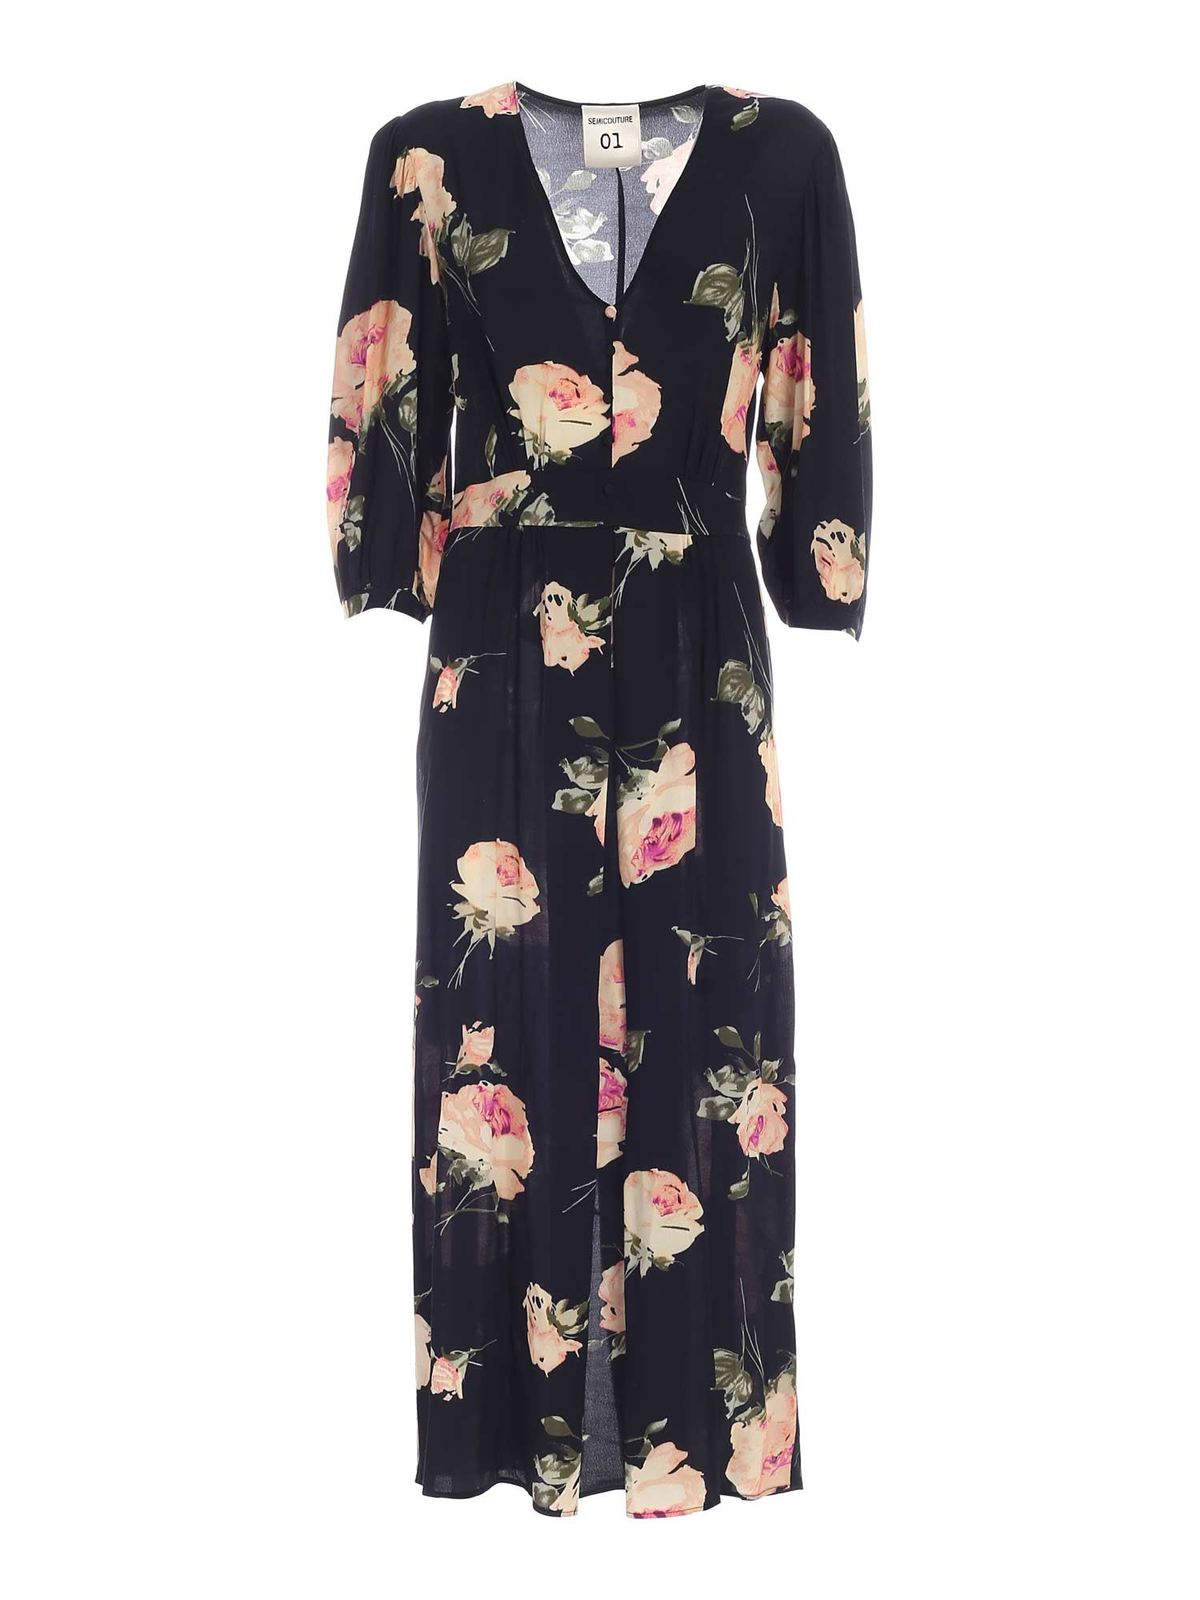 Semicouture COLLEN FLORAL PRINT DRESS IN BLACK